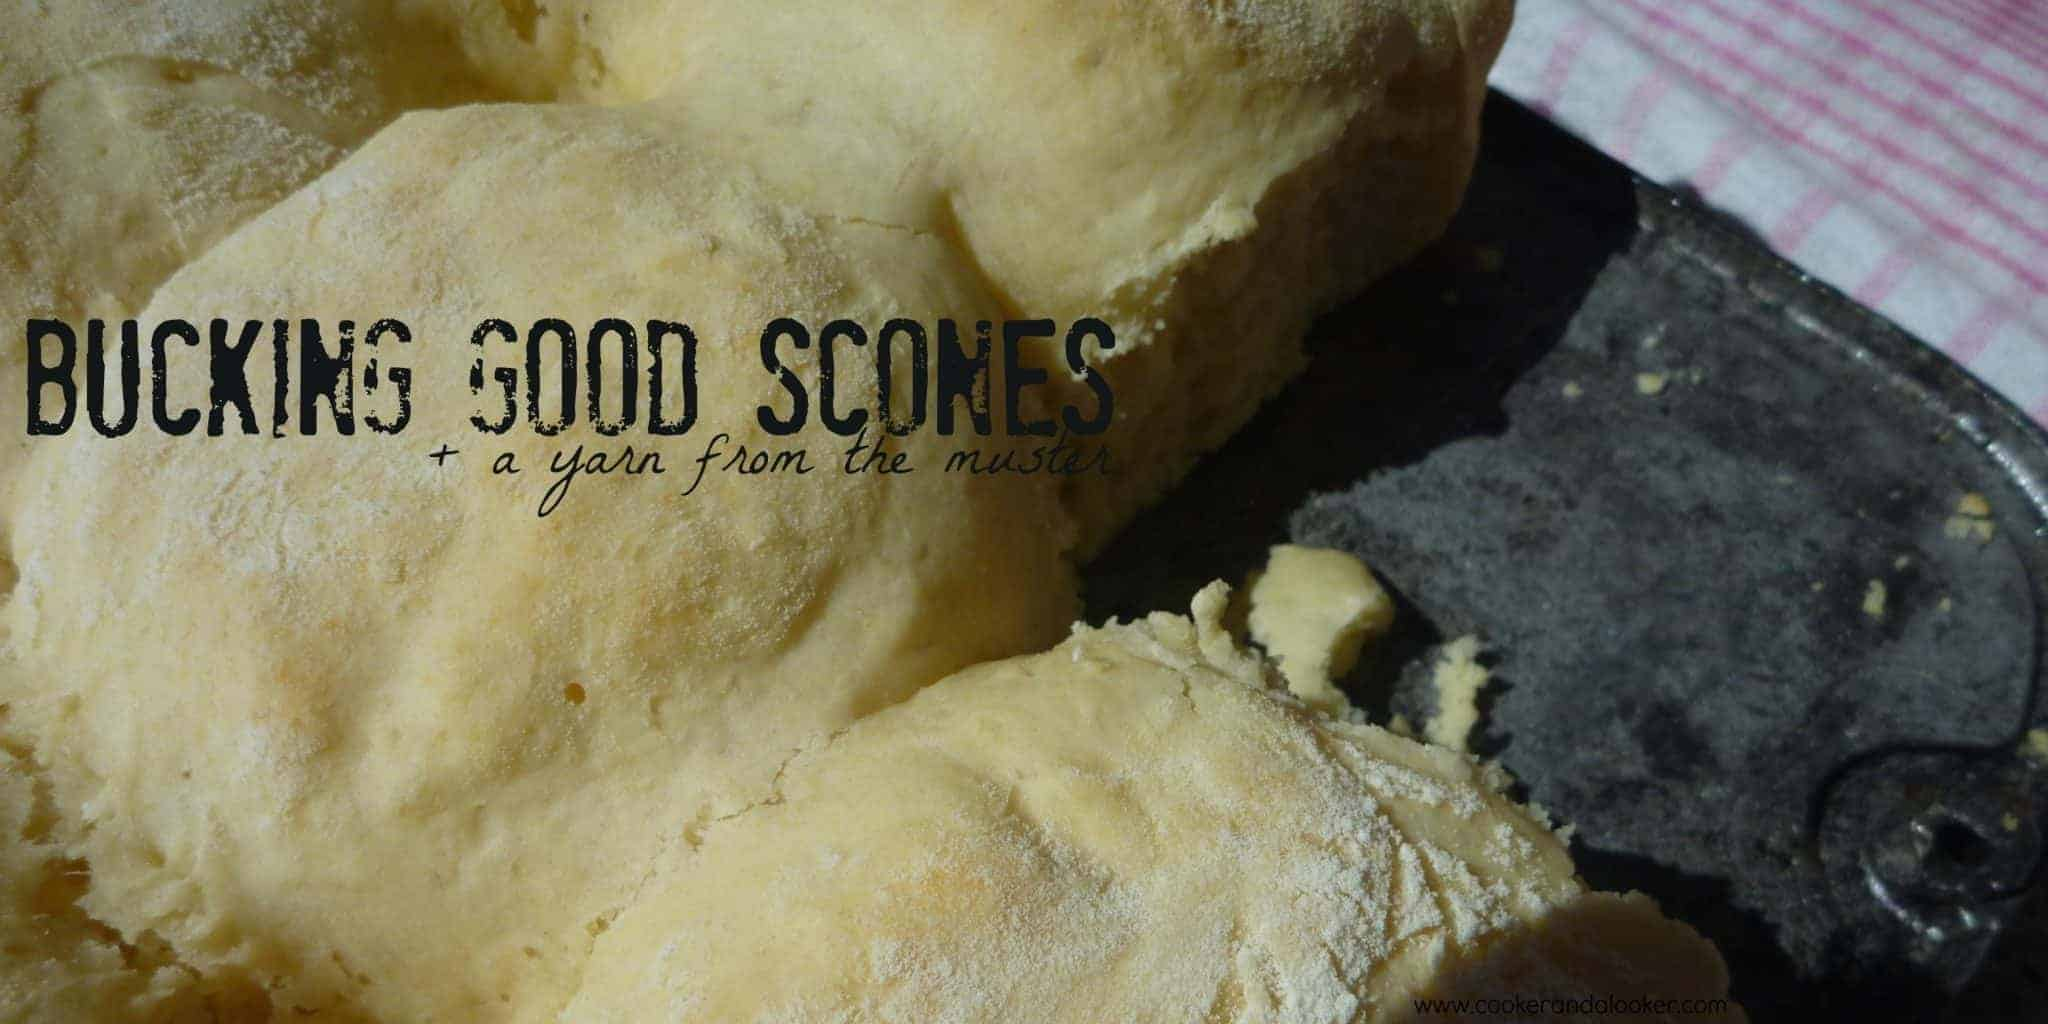 bucking good scones - Cooker and a Looker